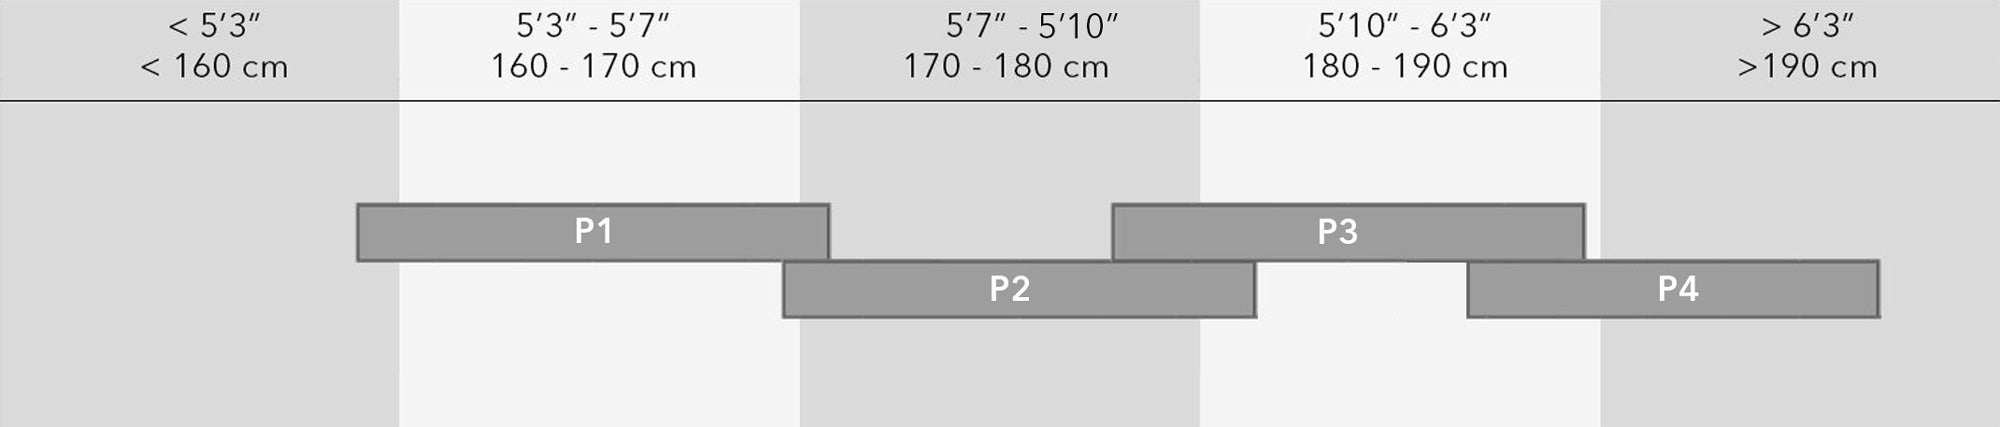 Height to frame size graph